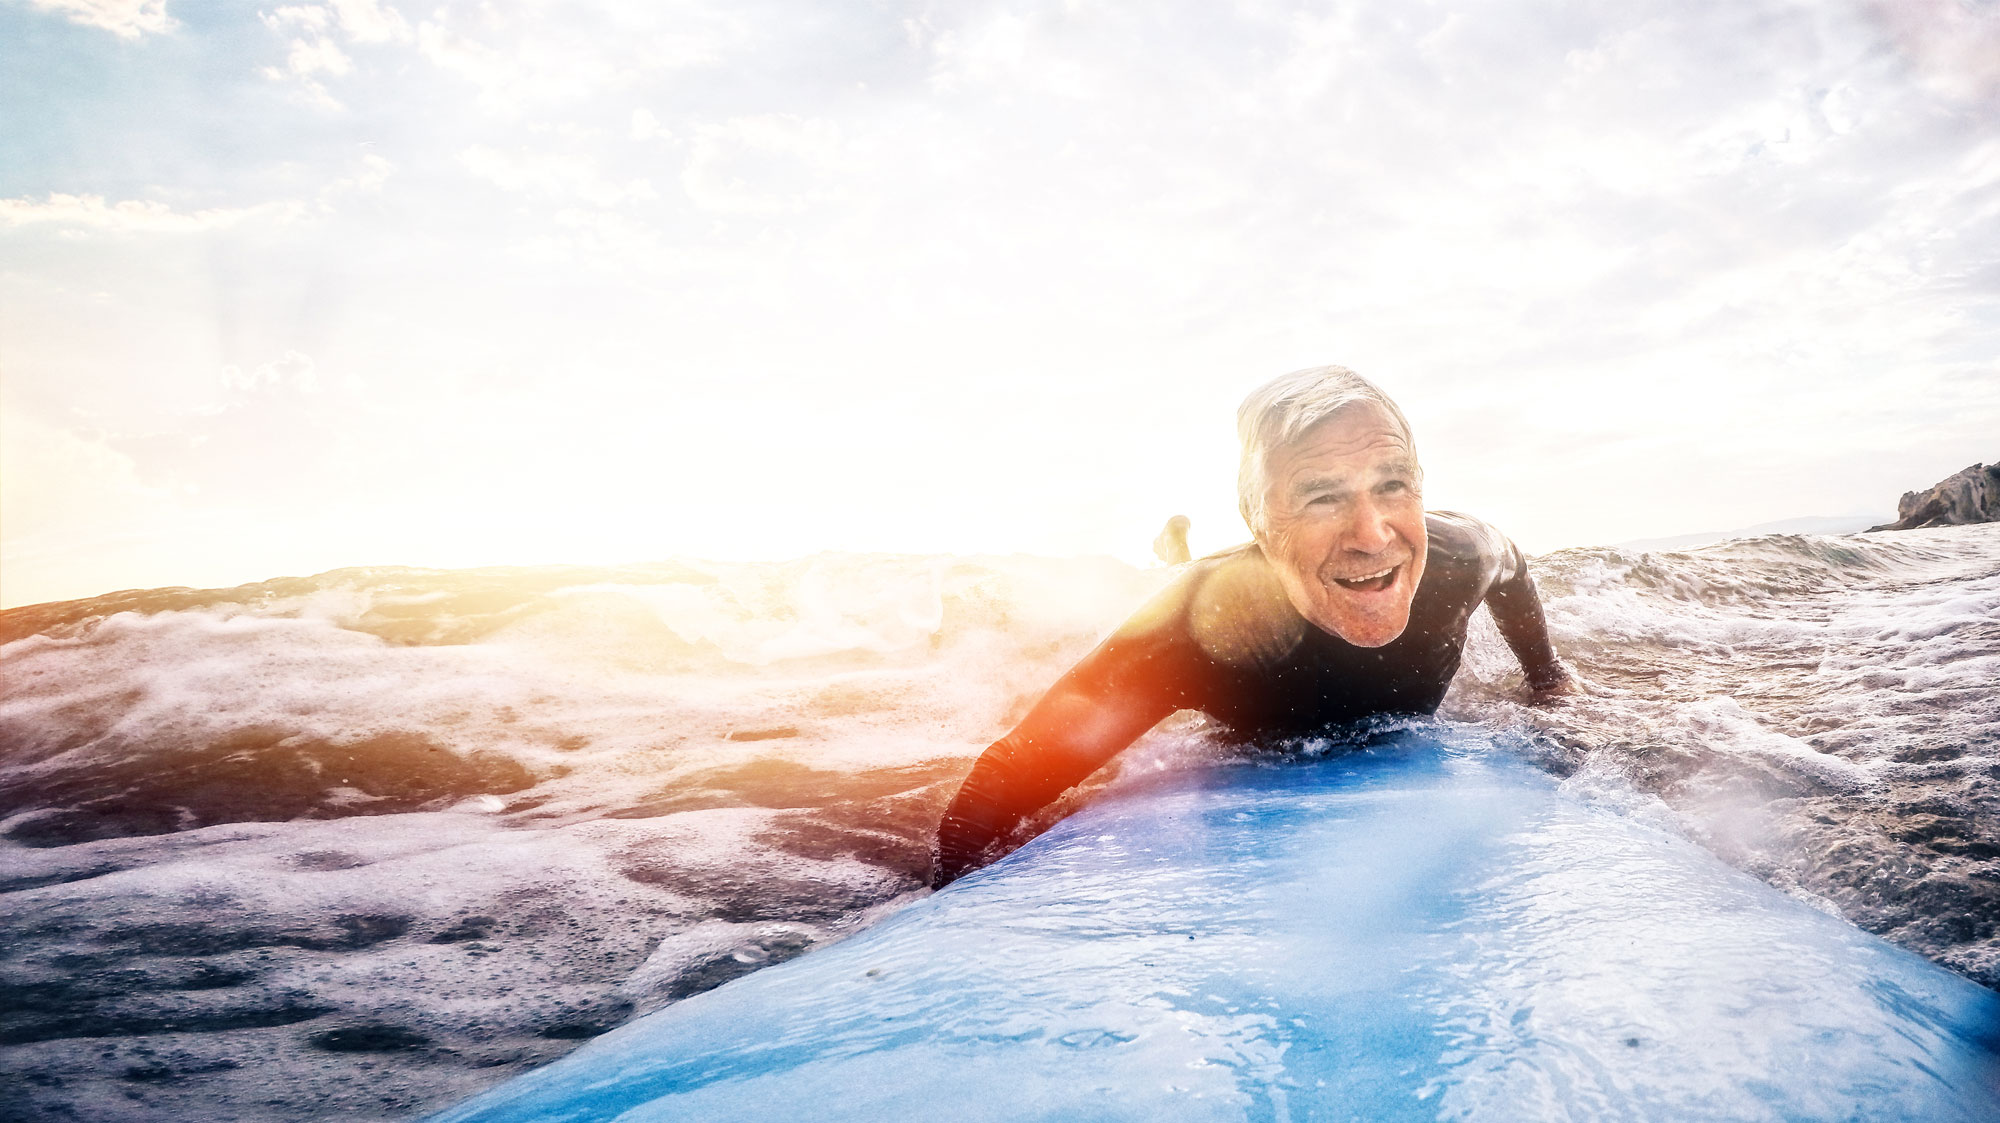 Older man smiling and surfing